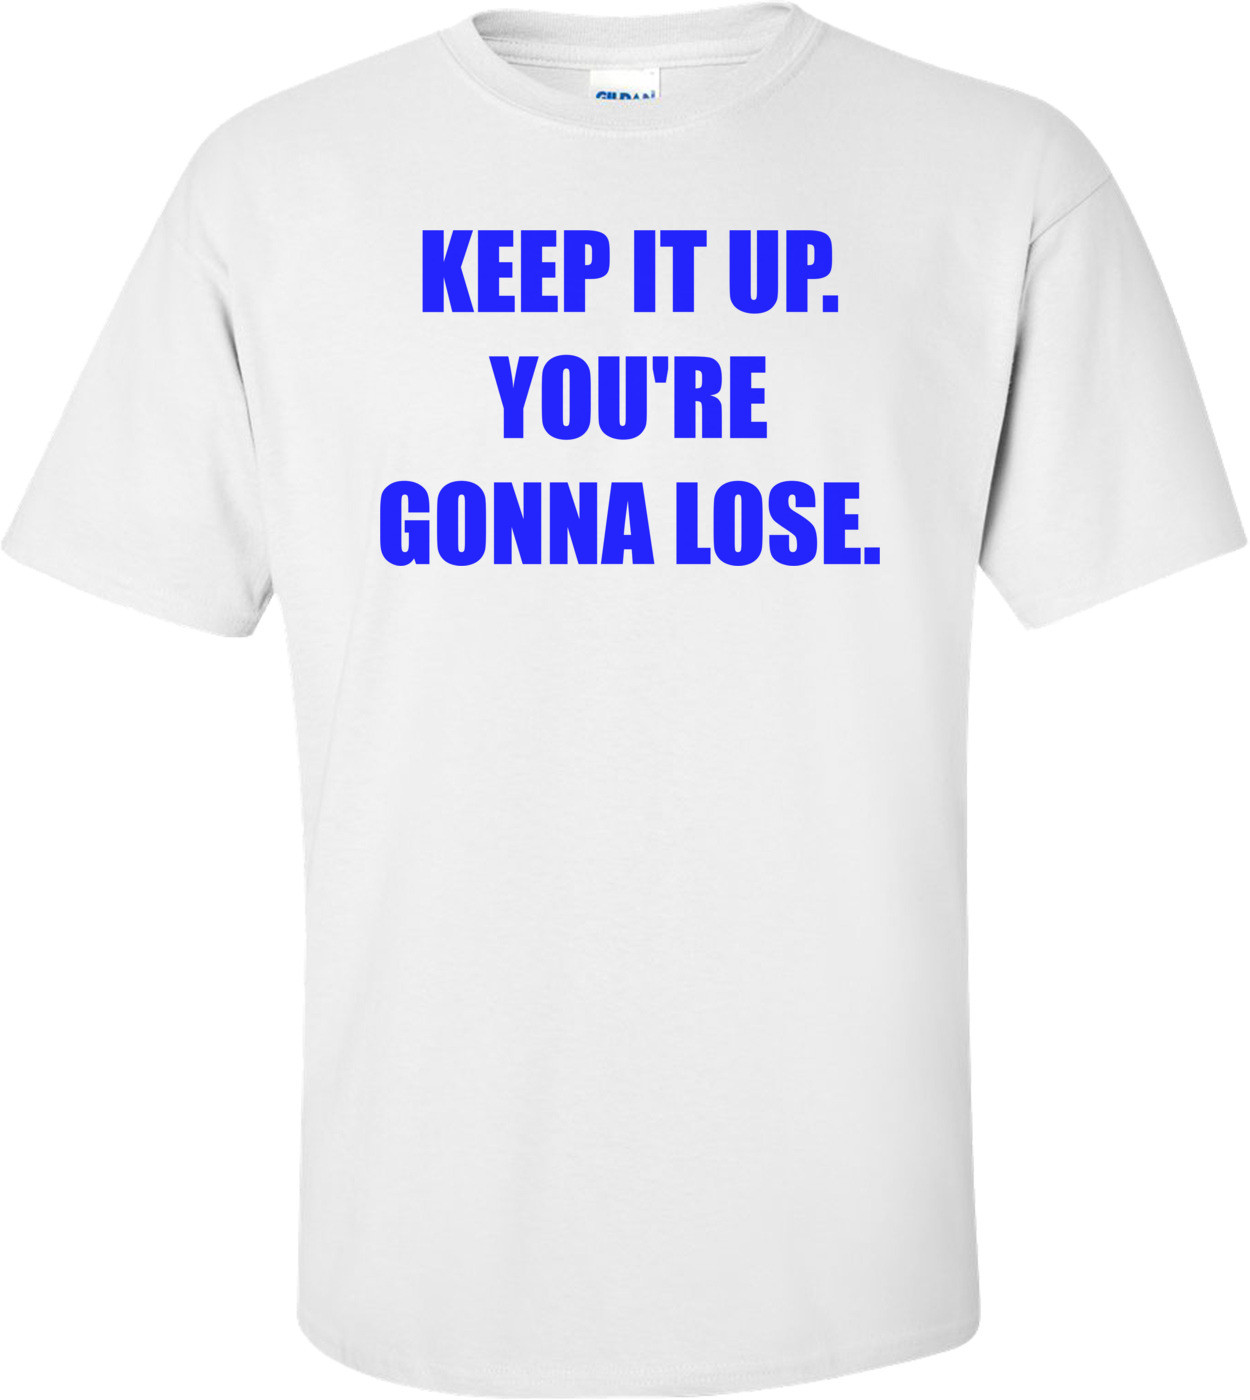 KEEP IT UP. YOU'RE GONNA LOSE. Shirt